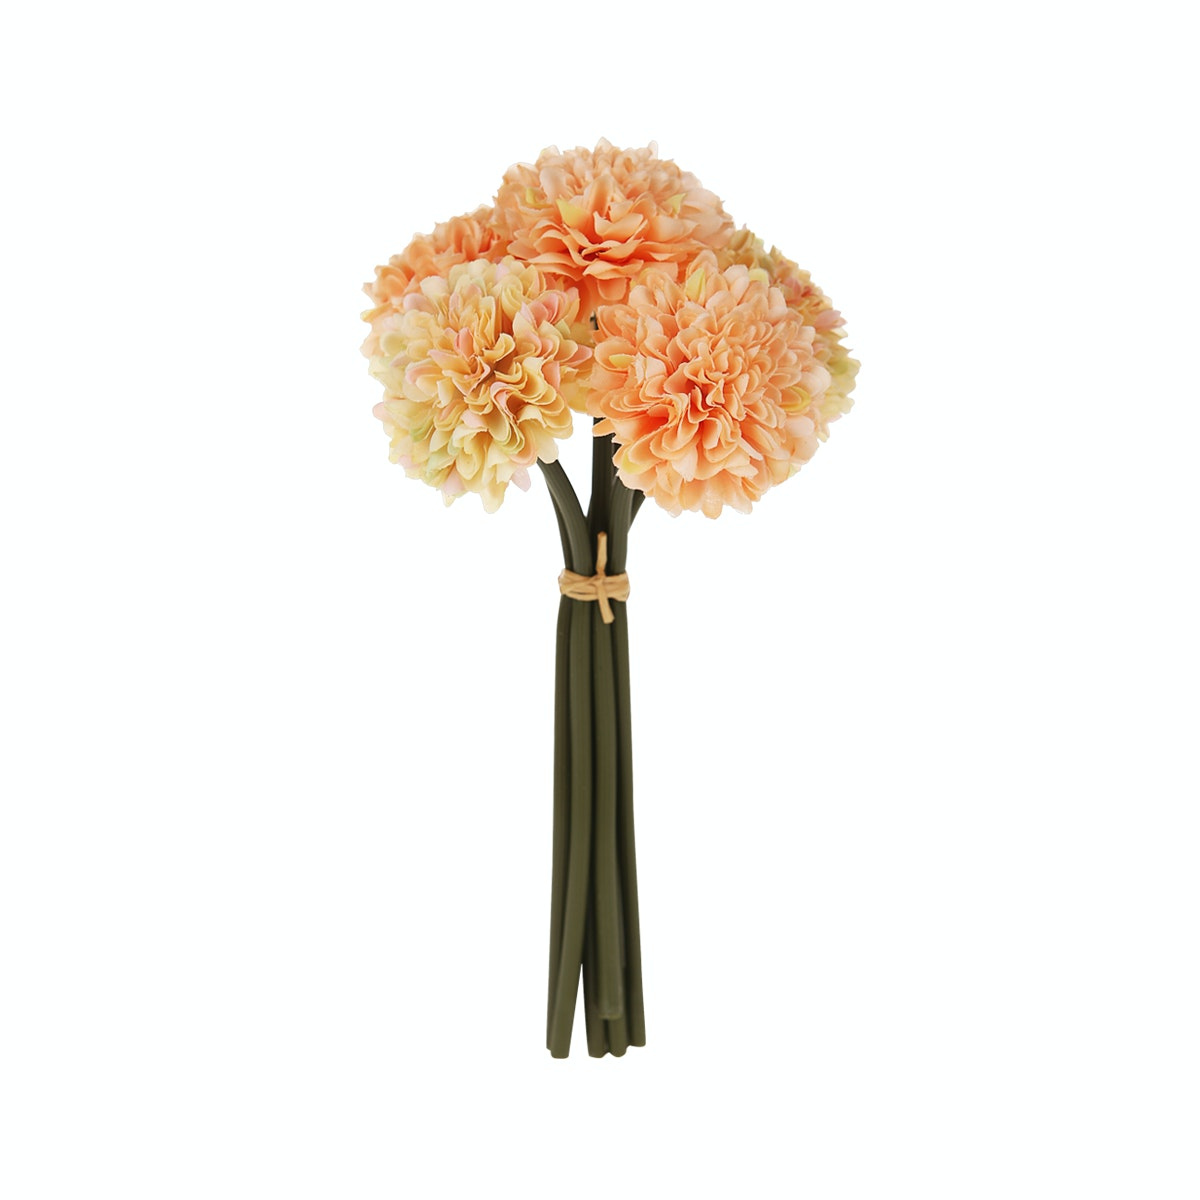 White Lace House Peony Bunch Peach